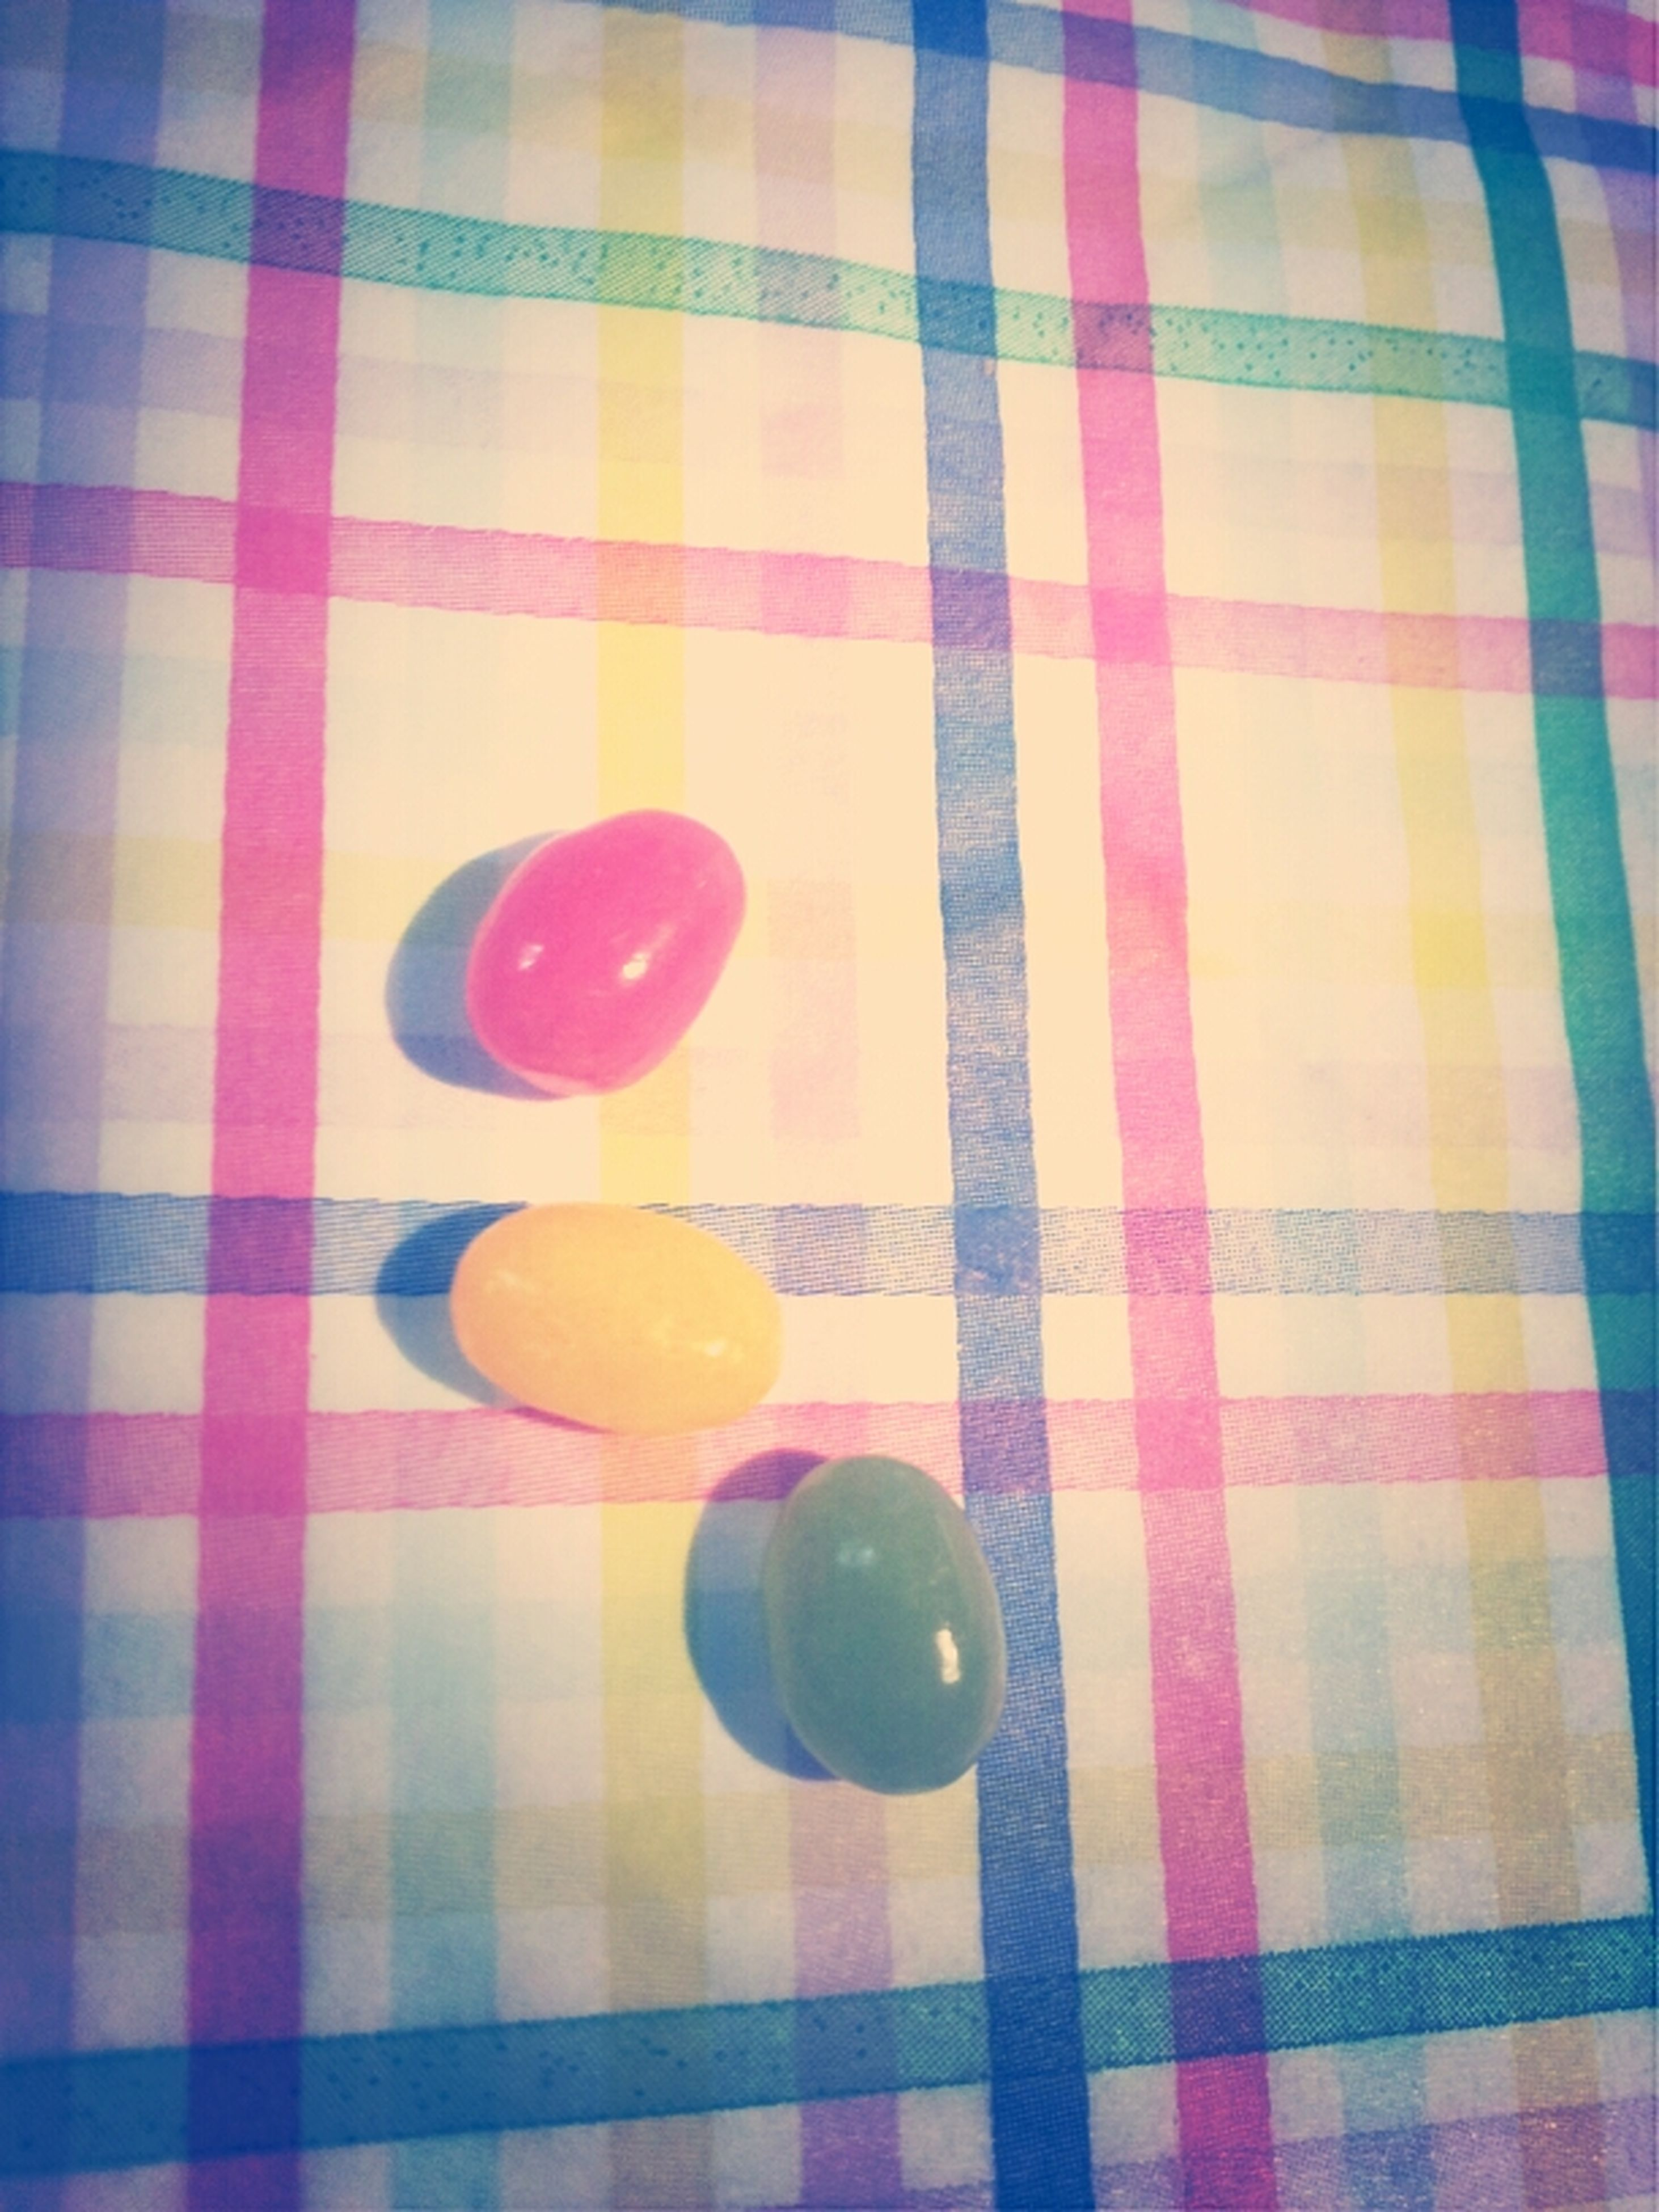 indoors, red, still life, high angle view, table, pattern, multi colored, food and drink, close-up, pink color, directly above, blue, no people, tablecloth, creativity, circle, white color, heart shape, balloon, shape